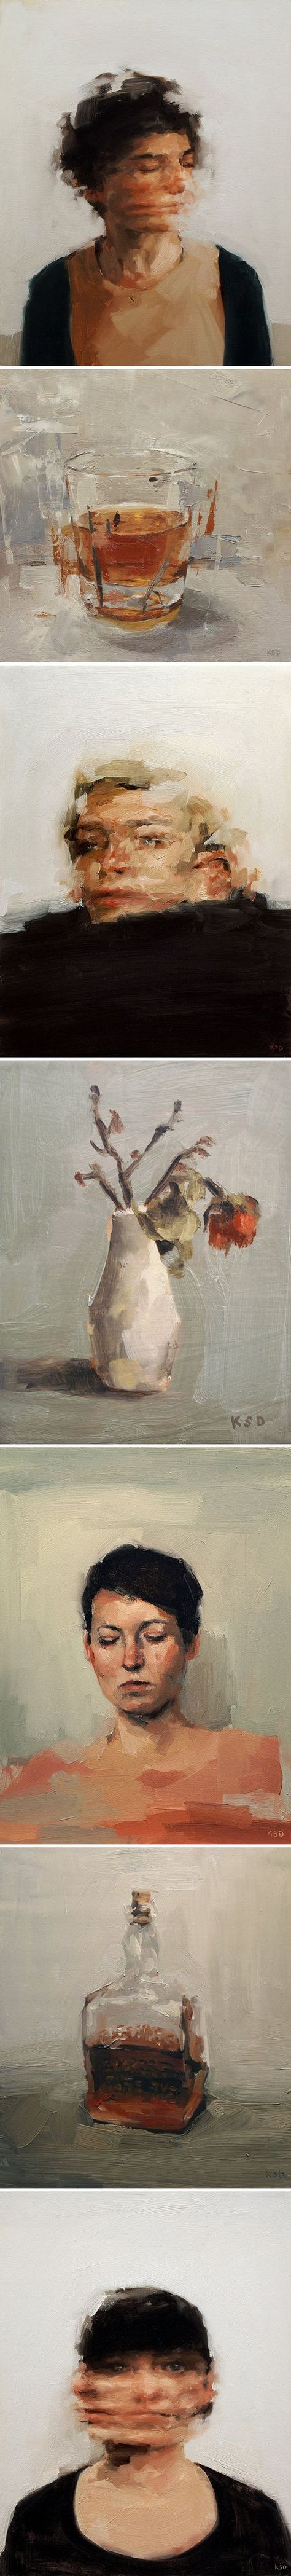 105 Best Artwork Images On Pinterest Visual Arts Contemporary  # Muebles Kostic Palencia